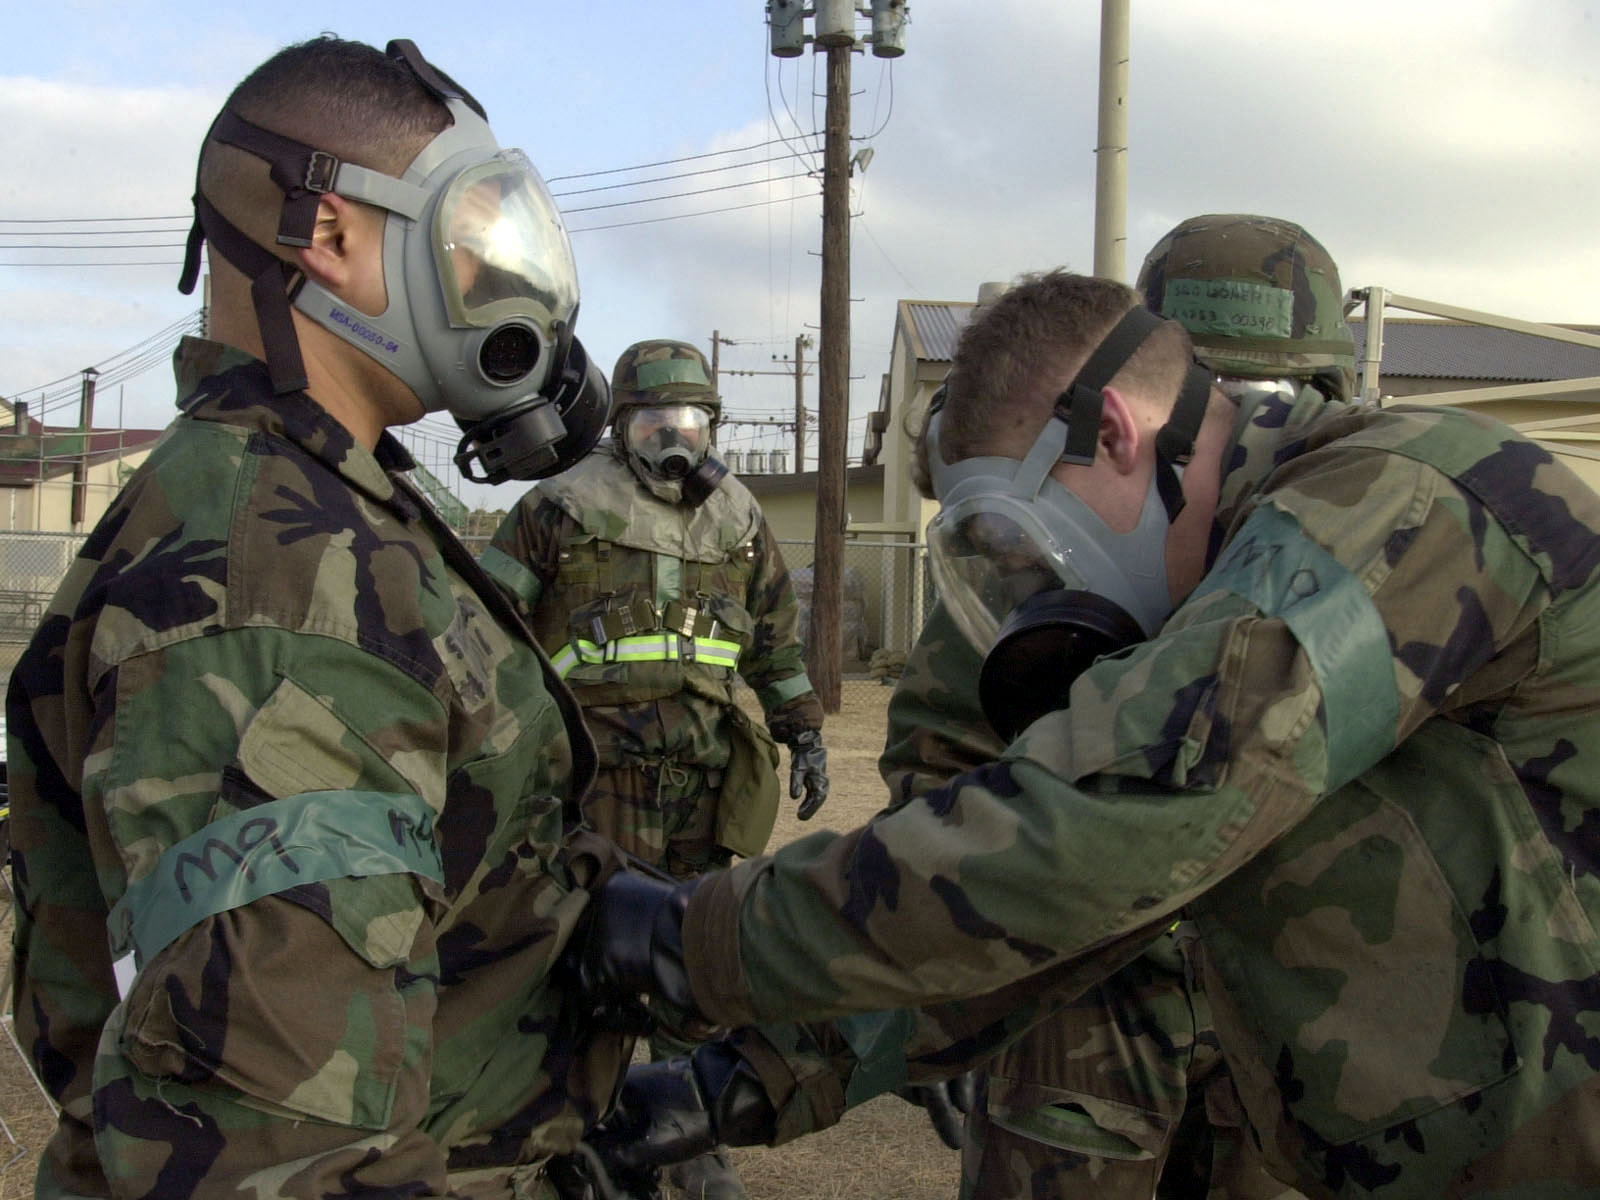 US Air Force Airmen of the 8th Fighter Wing, Kunsan Air Base, Republic of Korea Wing help each other takeoff the contaminated over-garments of their Mission-Oriented Protective Posture response level 4 (MOPP-4) gear at the Contaminant Control Area during their Operational Readiness Inspection (ORI). The 8th Fighter Wings personnel are being evaluated on their wartime capabilities during their ORI